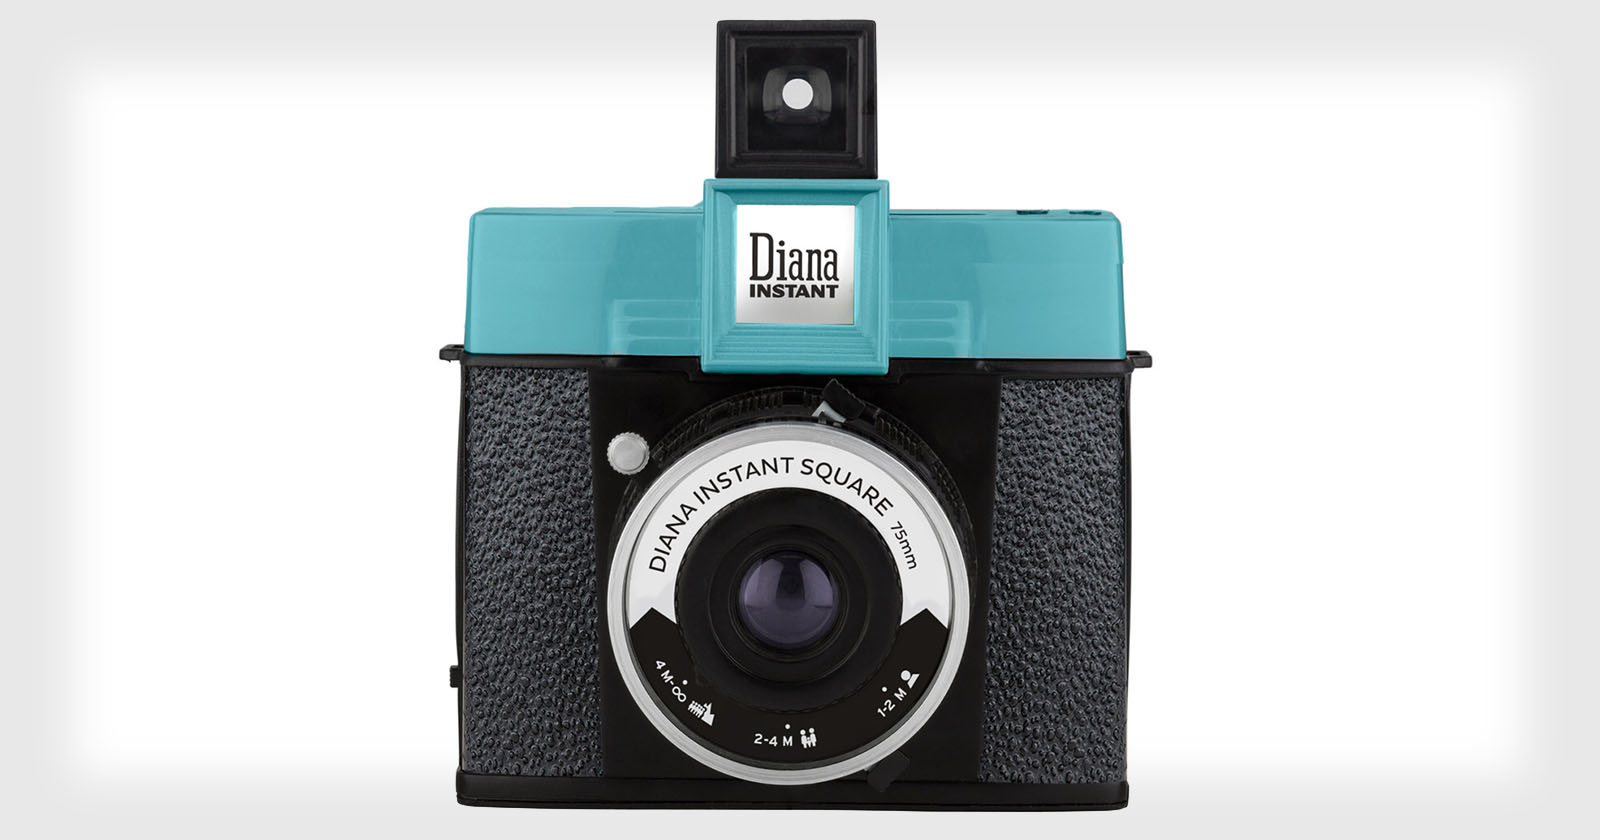 Lomo Instant Diana Instant Square: The First Instax Camera With